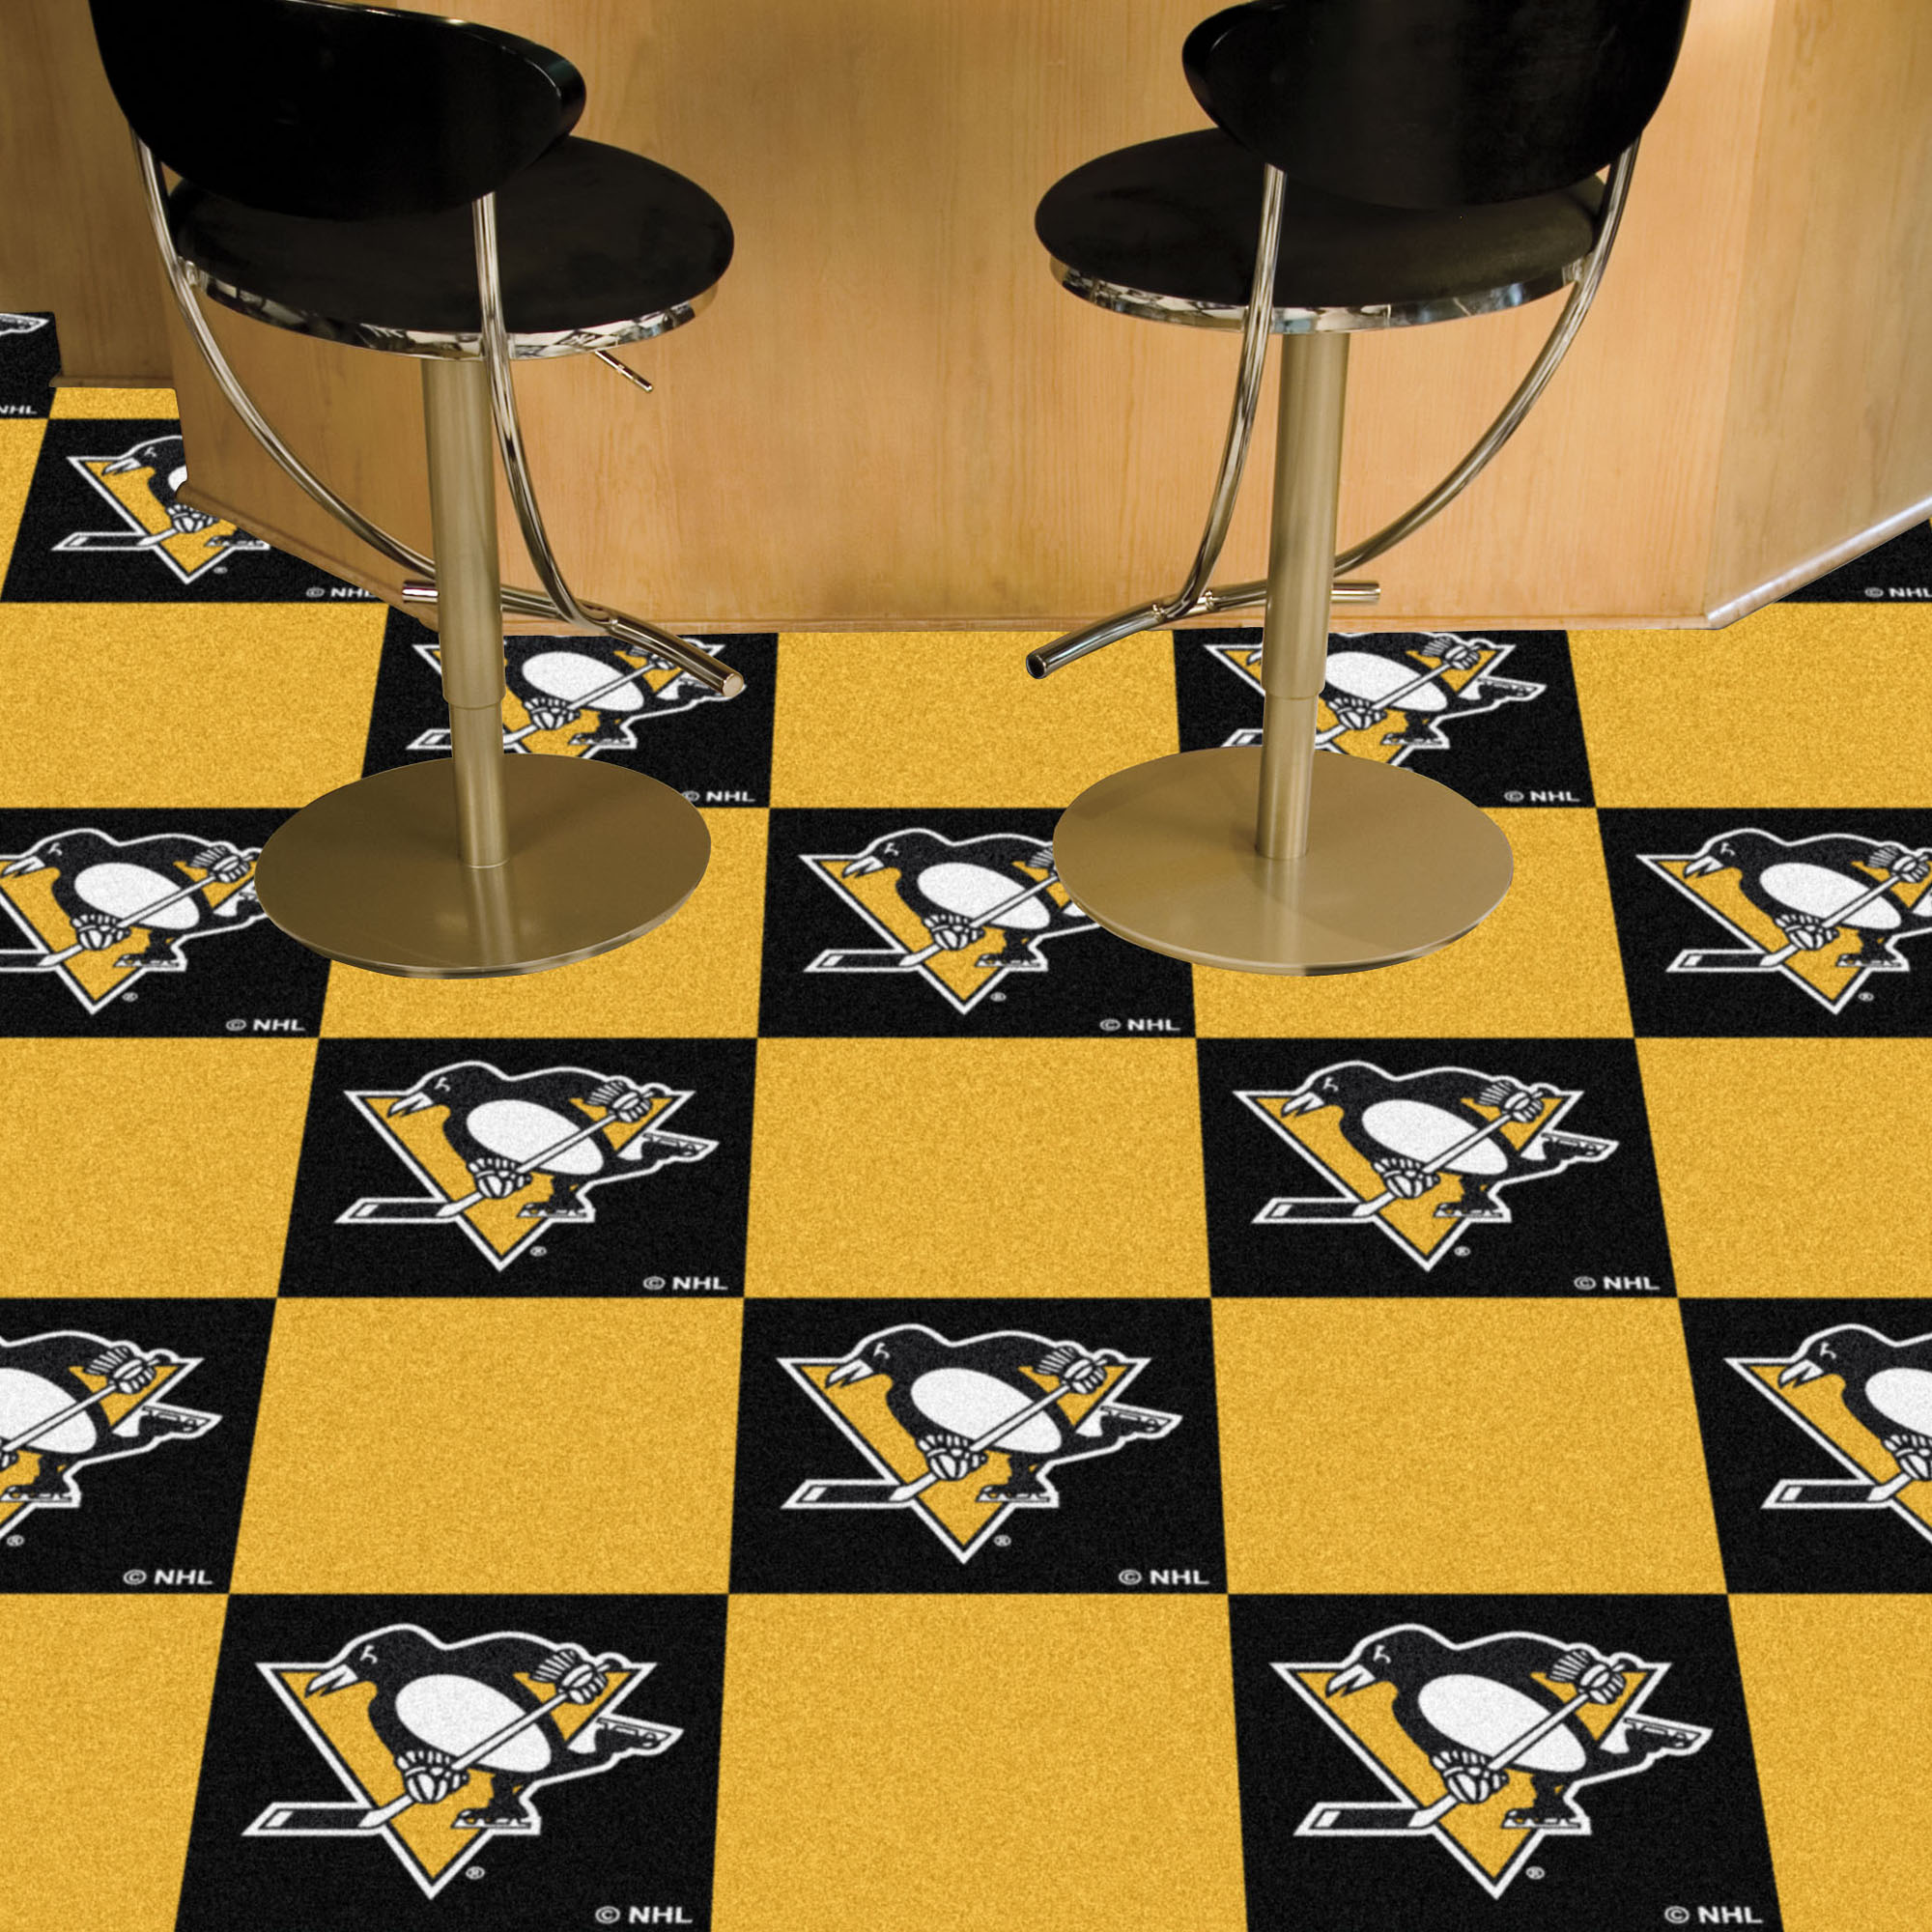 Pittsburgh Penguins Carpet Tiles 18x18 in.